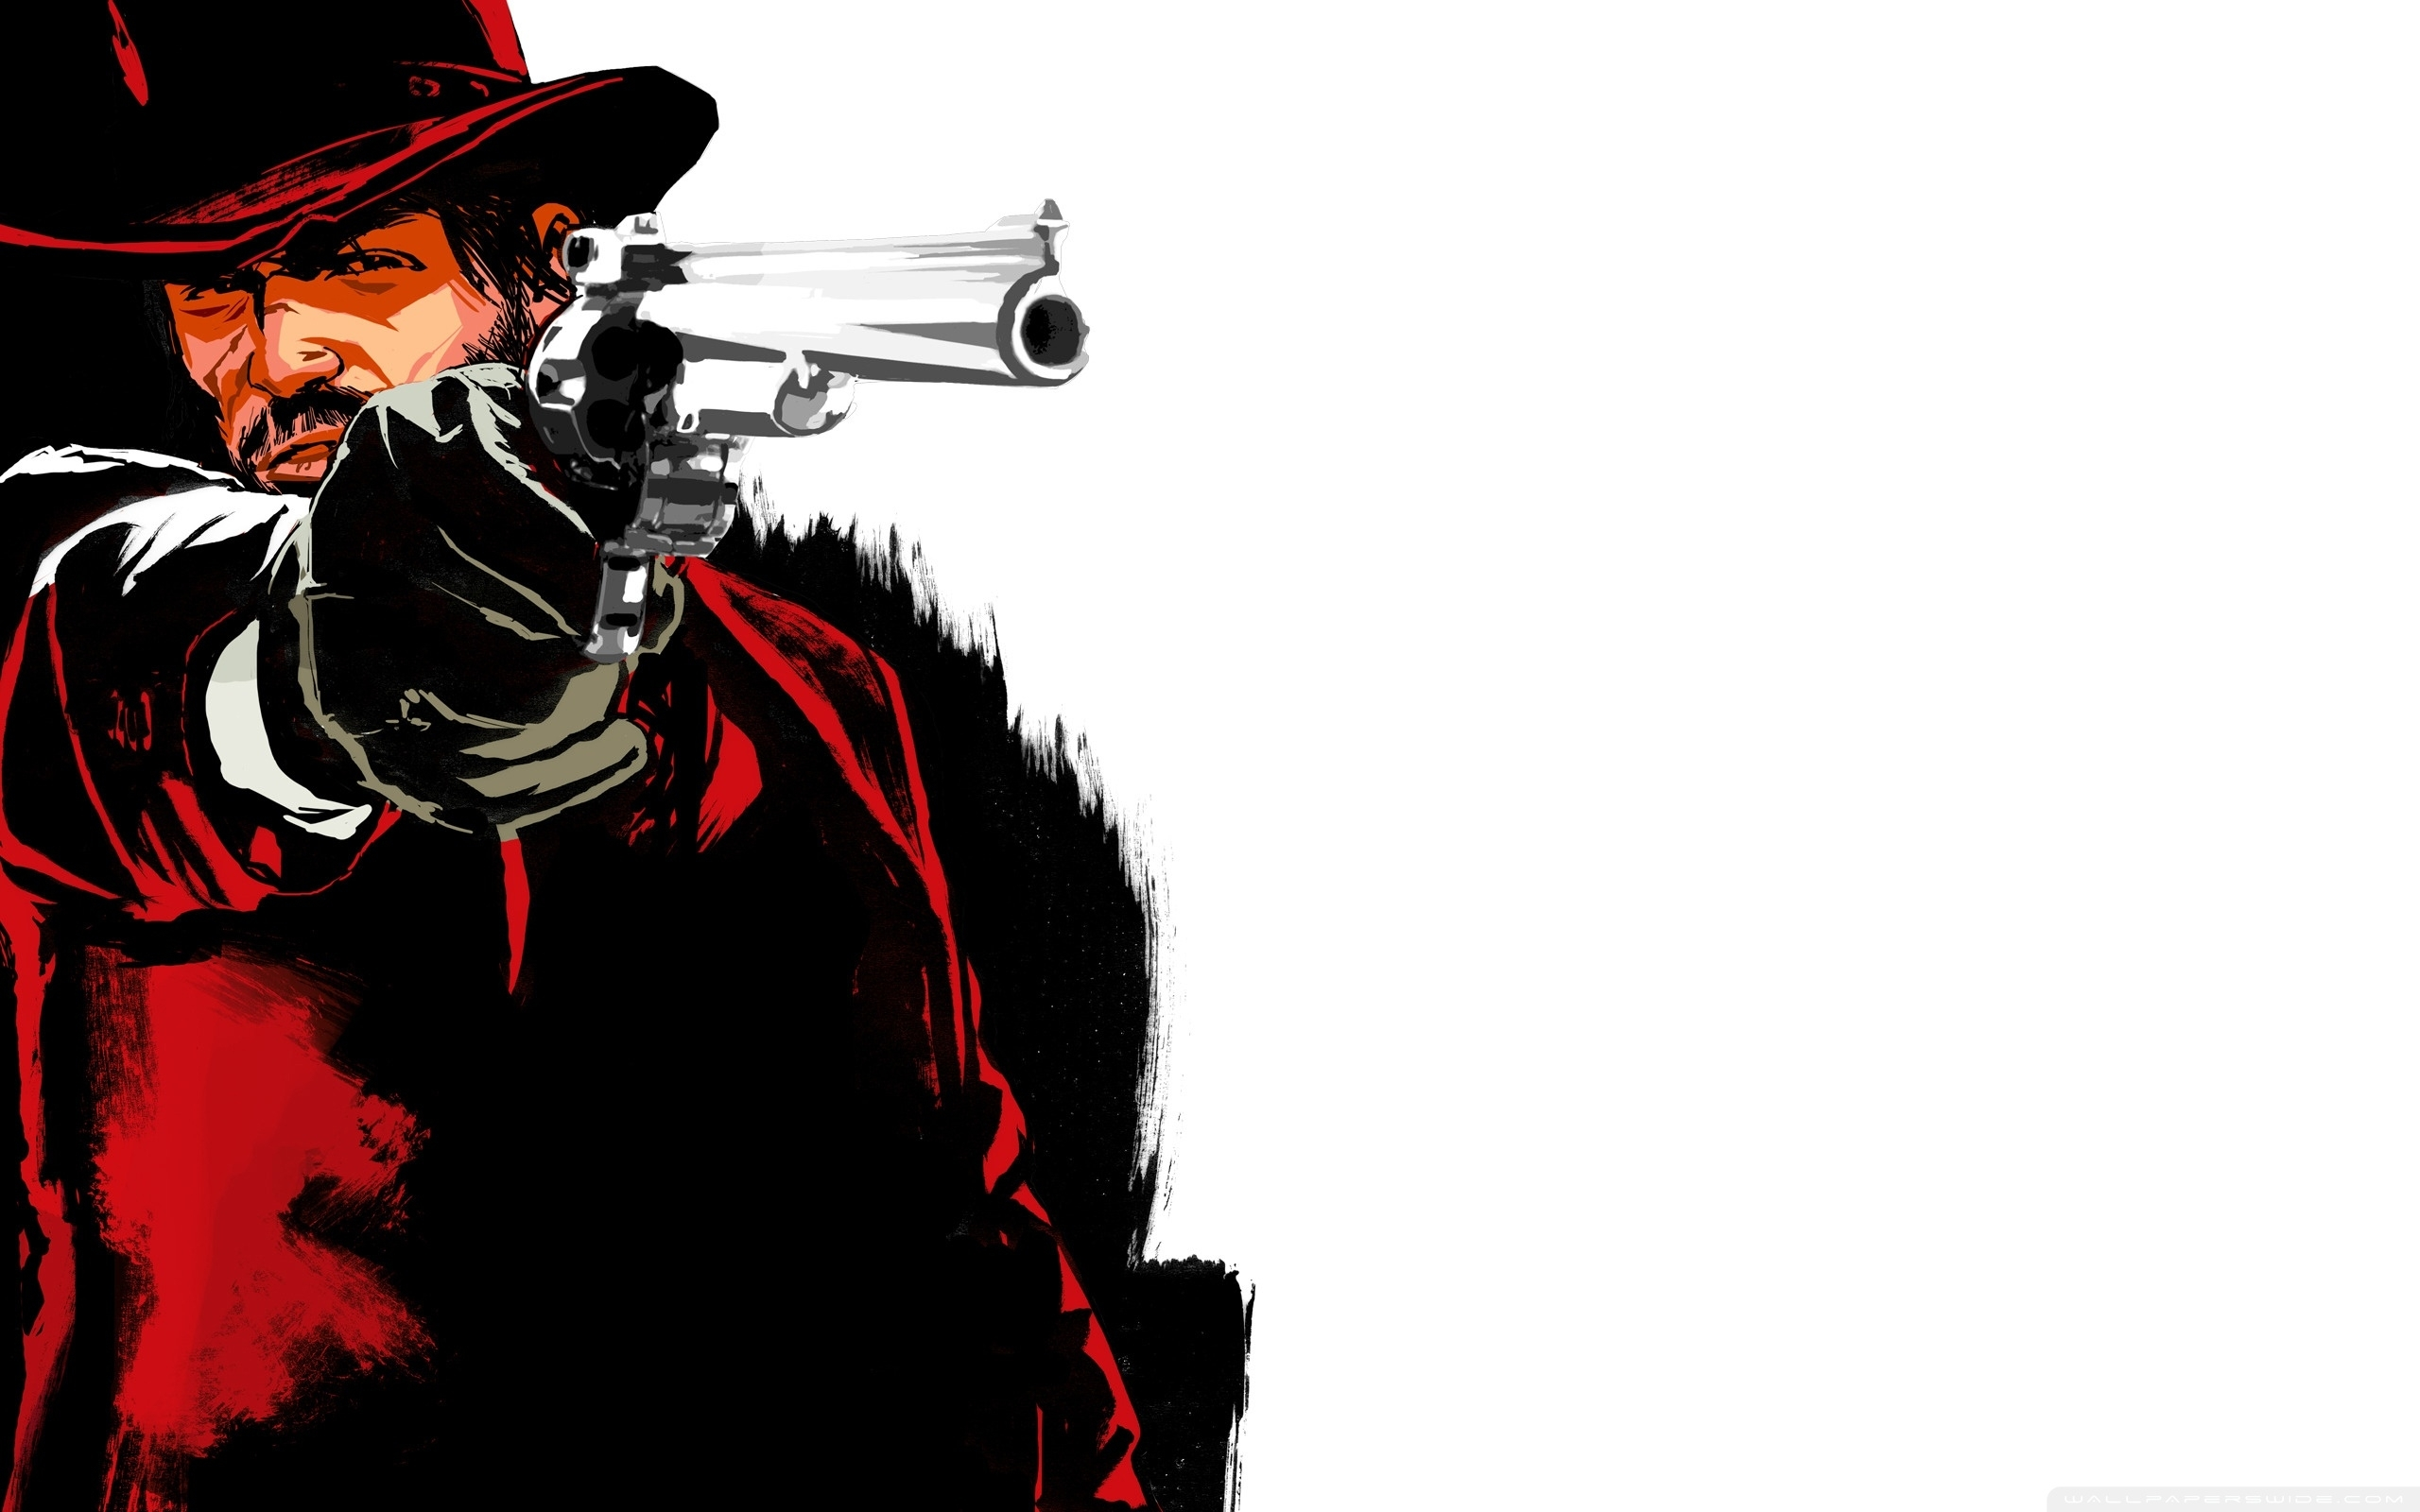 wallpaperswide ❤ red dead redemption hd desktop wallpapers for